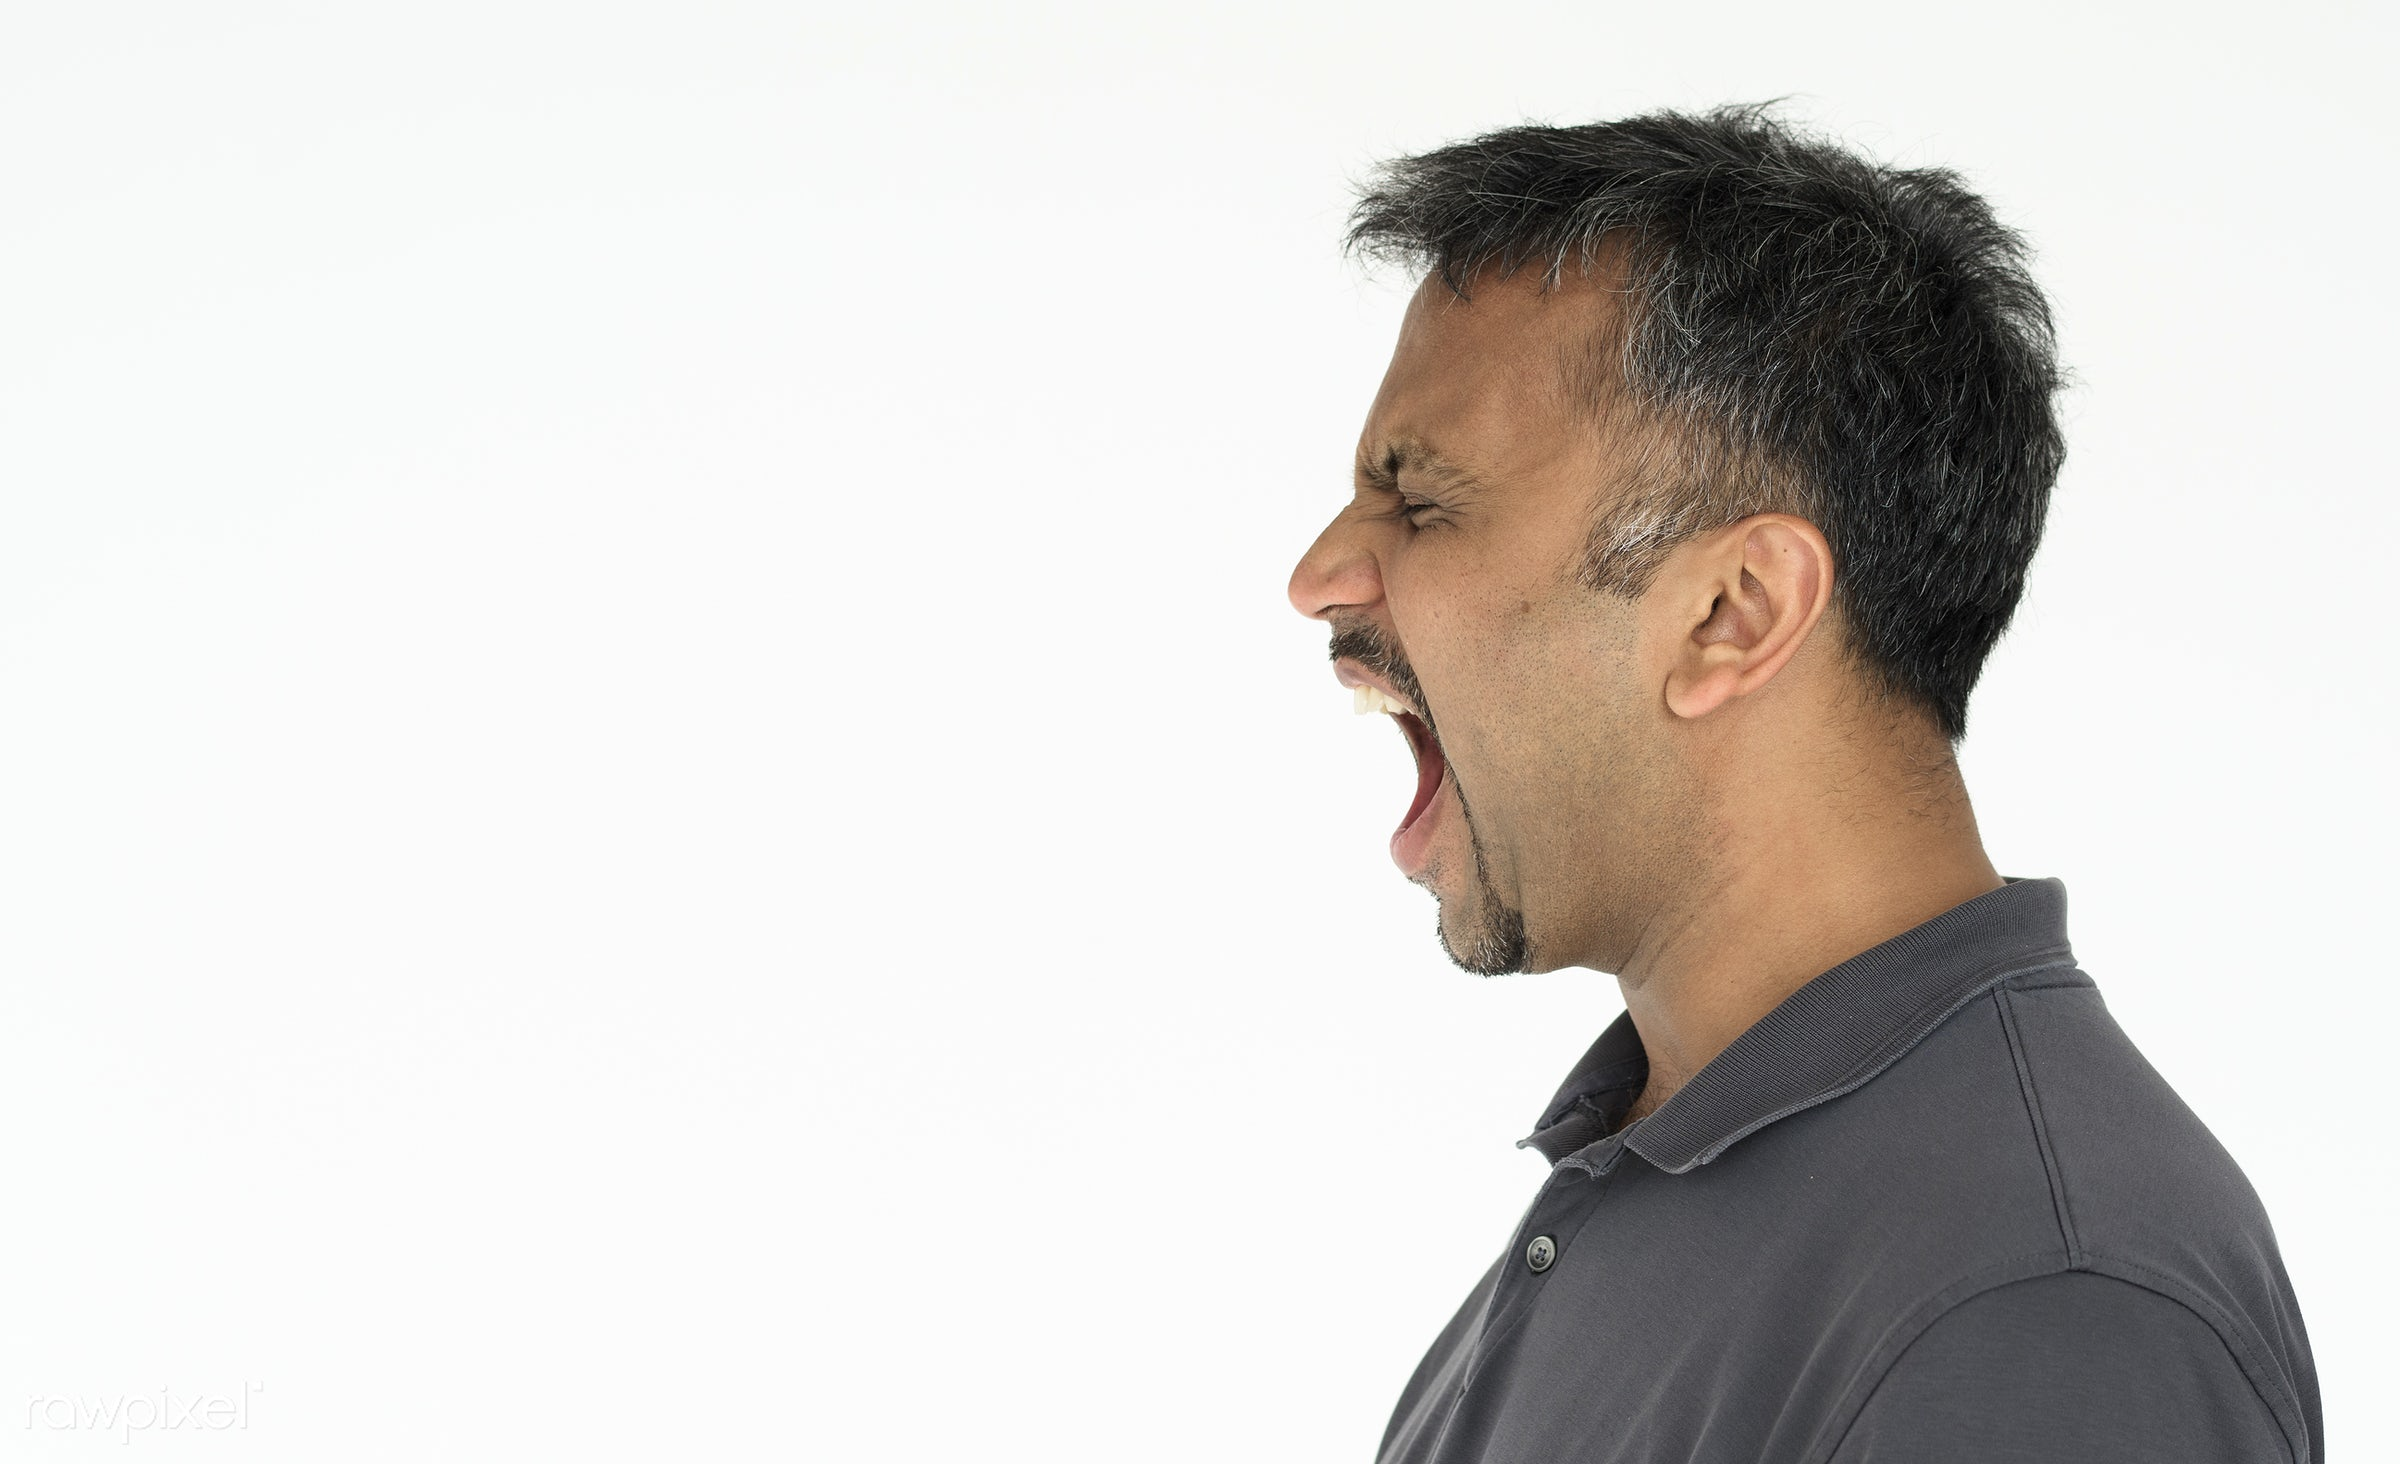 expression, studio, person, voice, indian ethnicity, one, side view, angry, race, people, open, style, lifestyle, casual,...